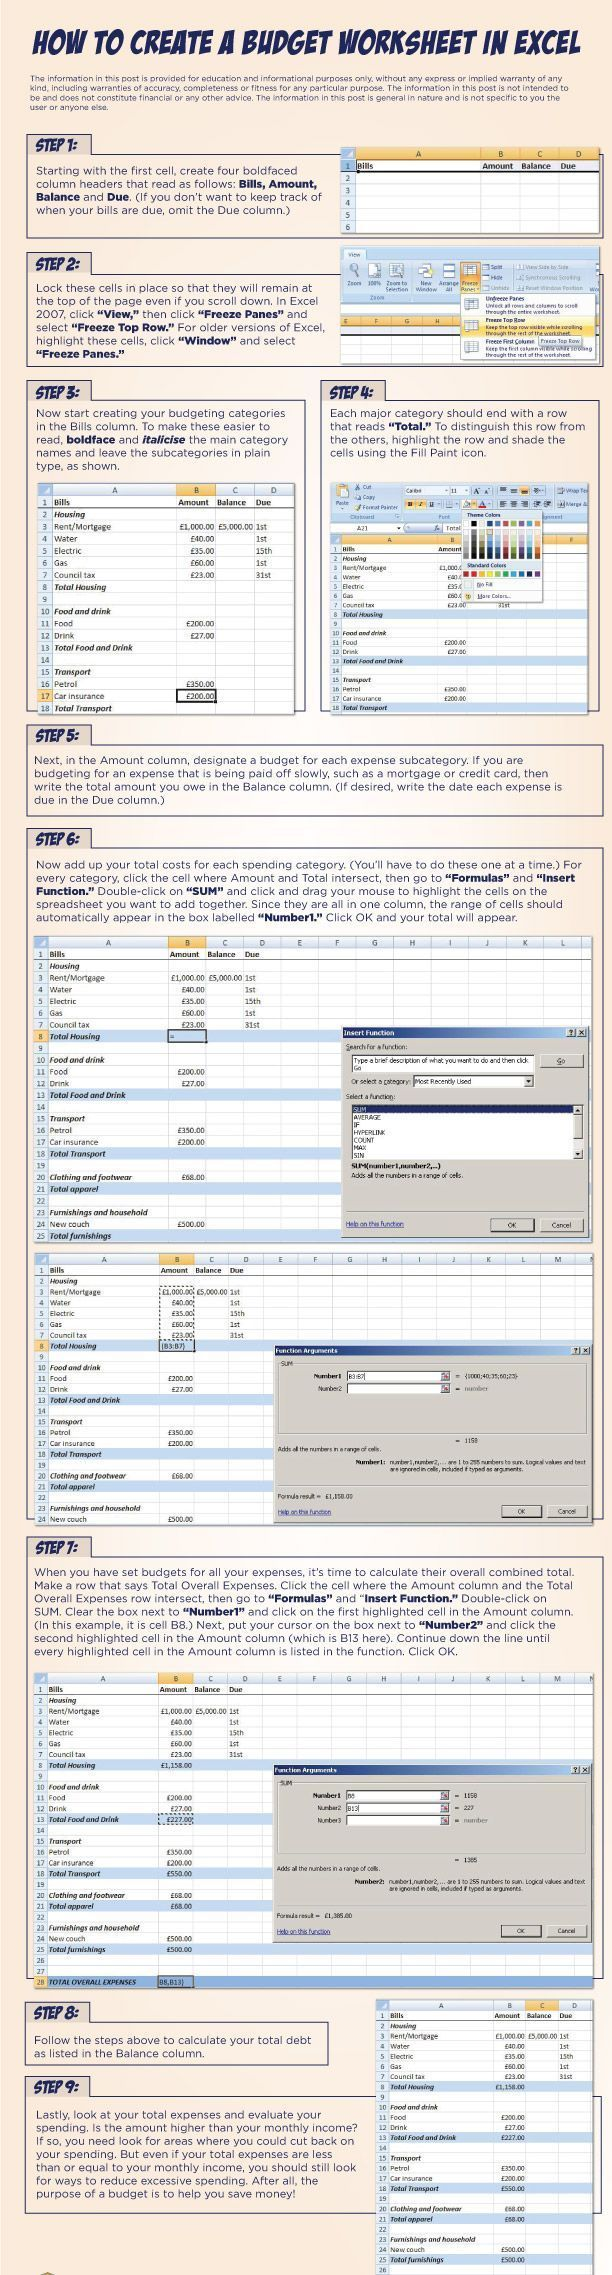 Resources Worksheet Excel  Best Printables Images On Pinterest  Free Printables Budget  Multiplication And Long Division Worksheets Word with Binomial Probability Worksheet Pdf Learn How To Create A Budget Worksheet In Excel Step By Step Fine Motor Skills Activities Worksheets Word